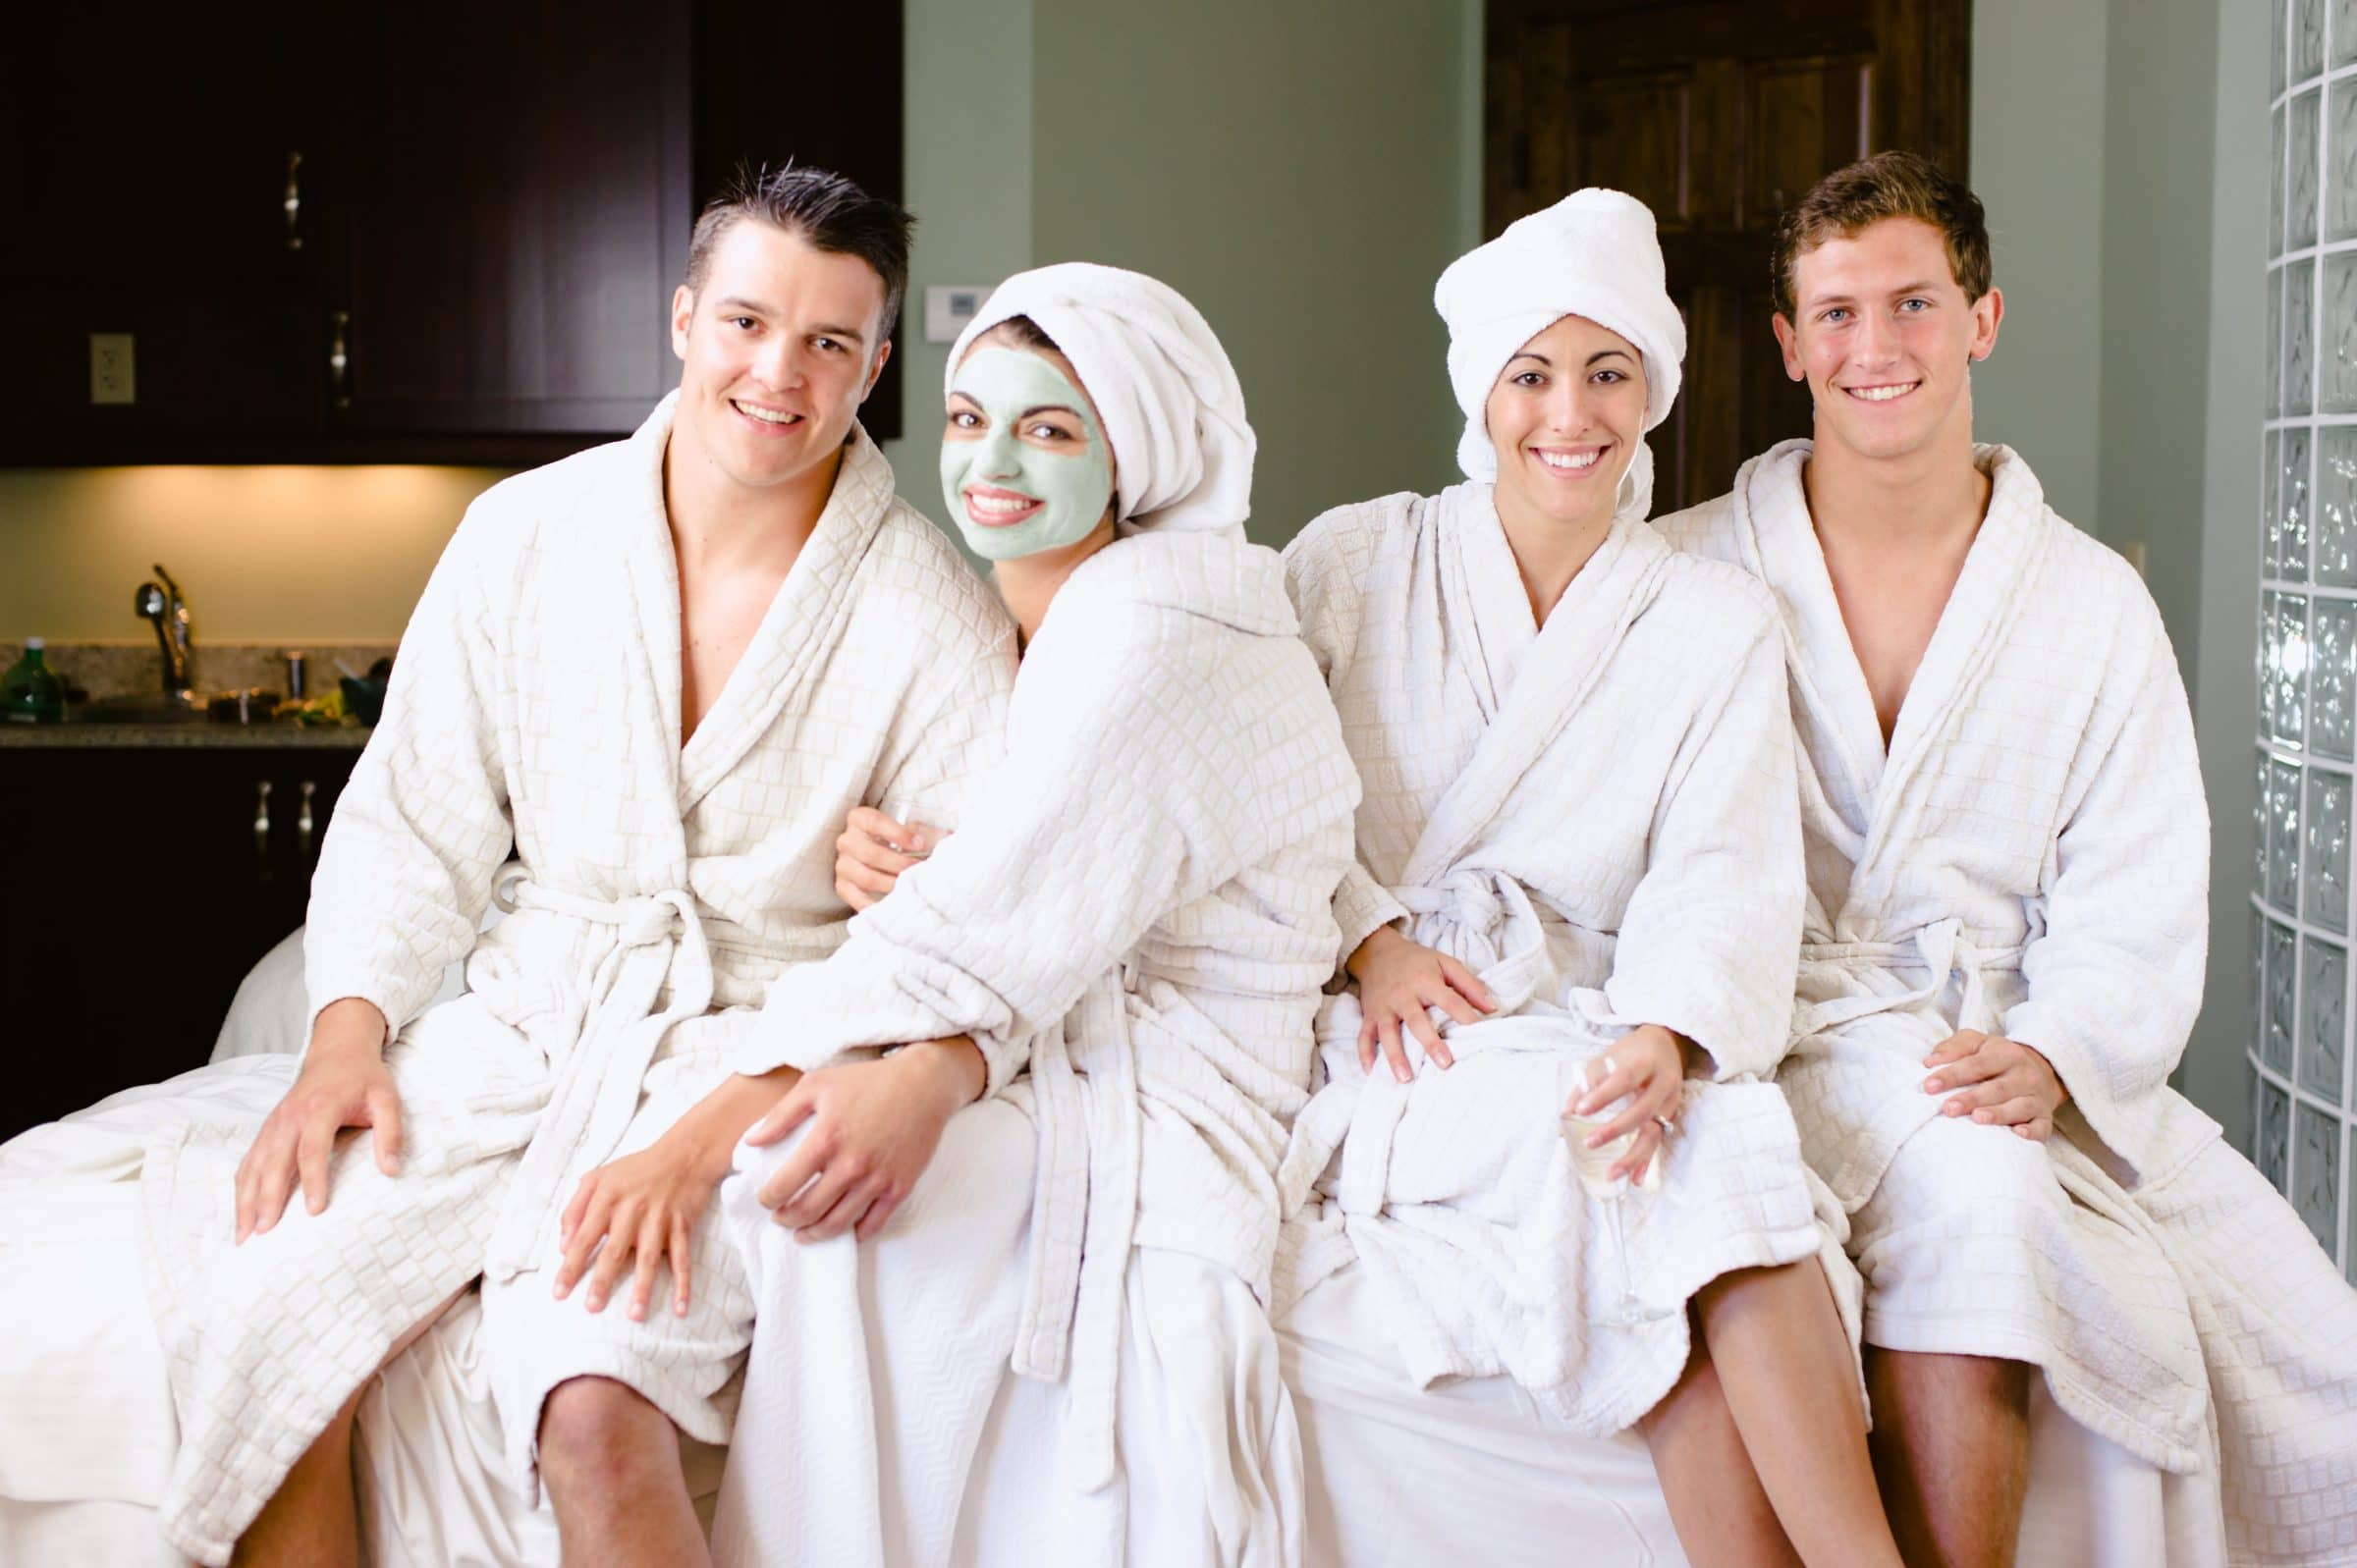 Two couples in spa robes